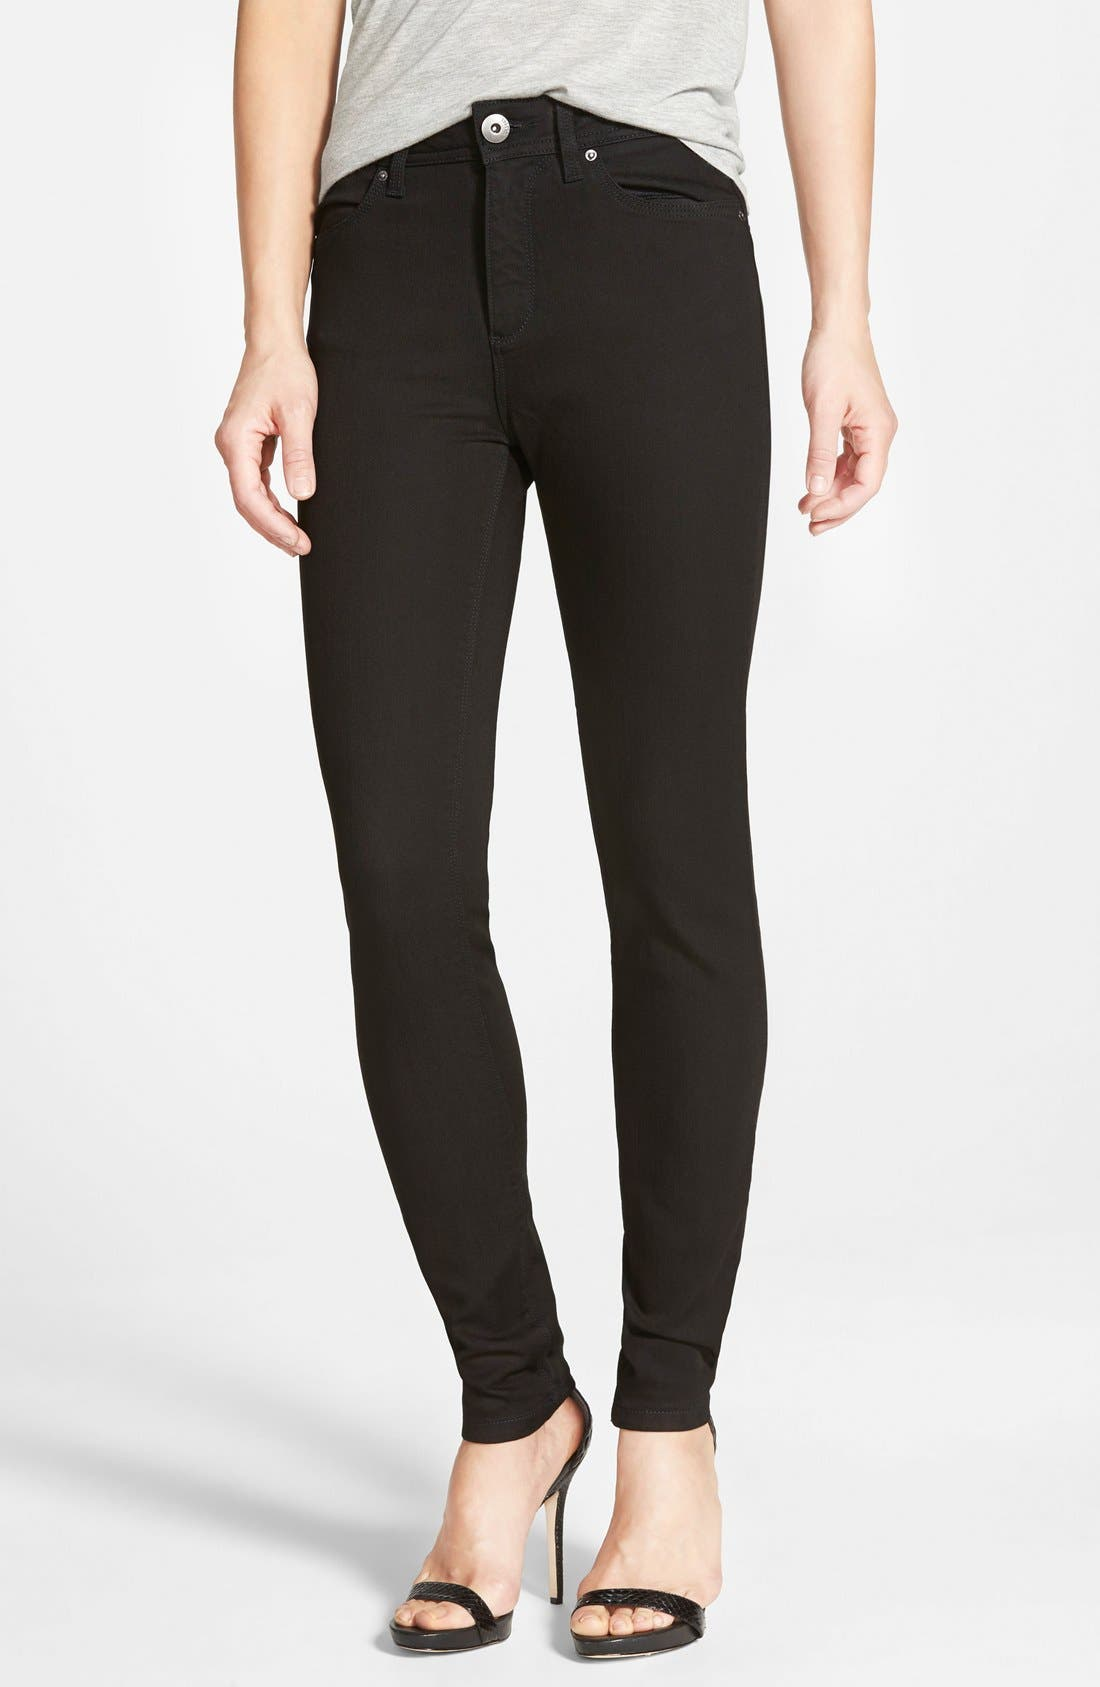 Alternate Image 1 Selected - DL 1961 'Nina' High Rise Skinny Jeans (Riker)